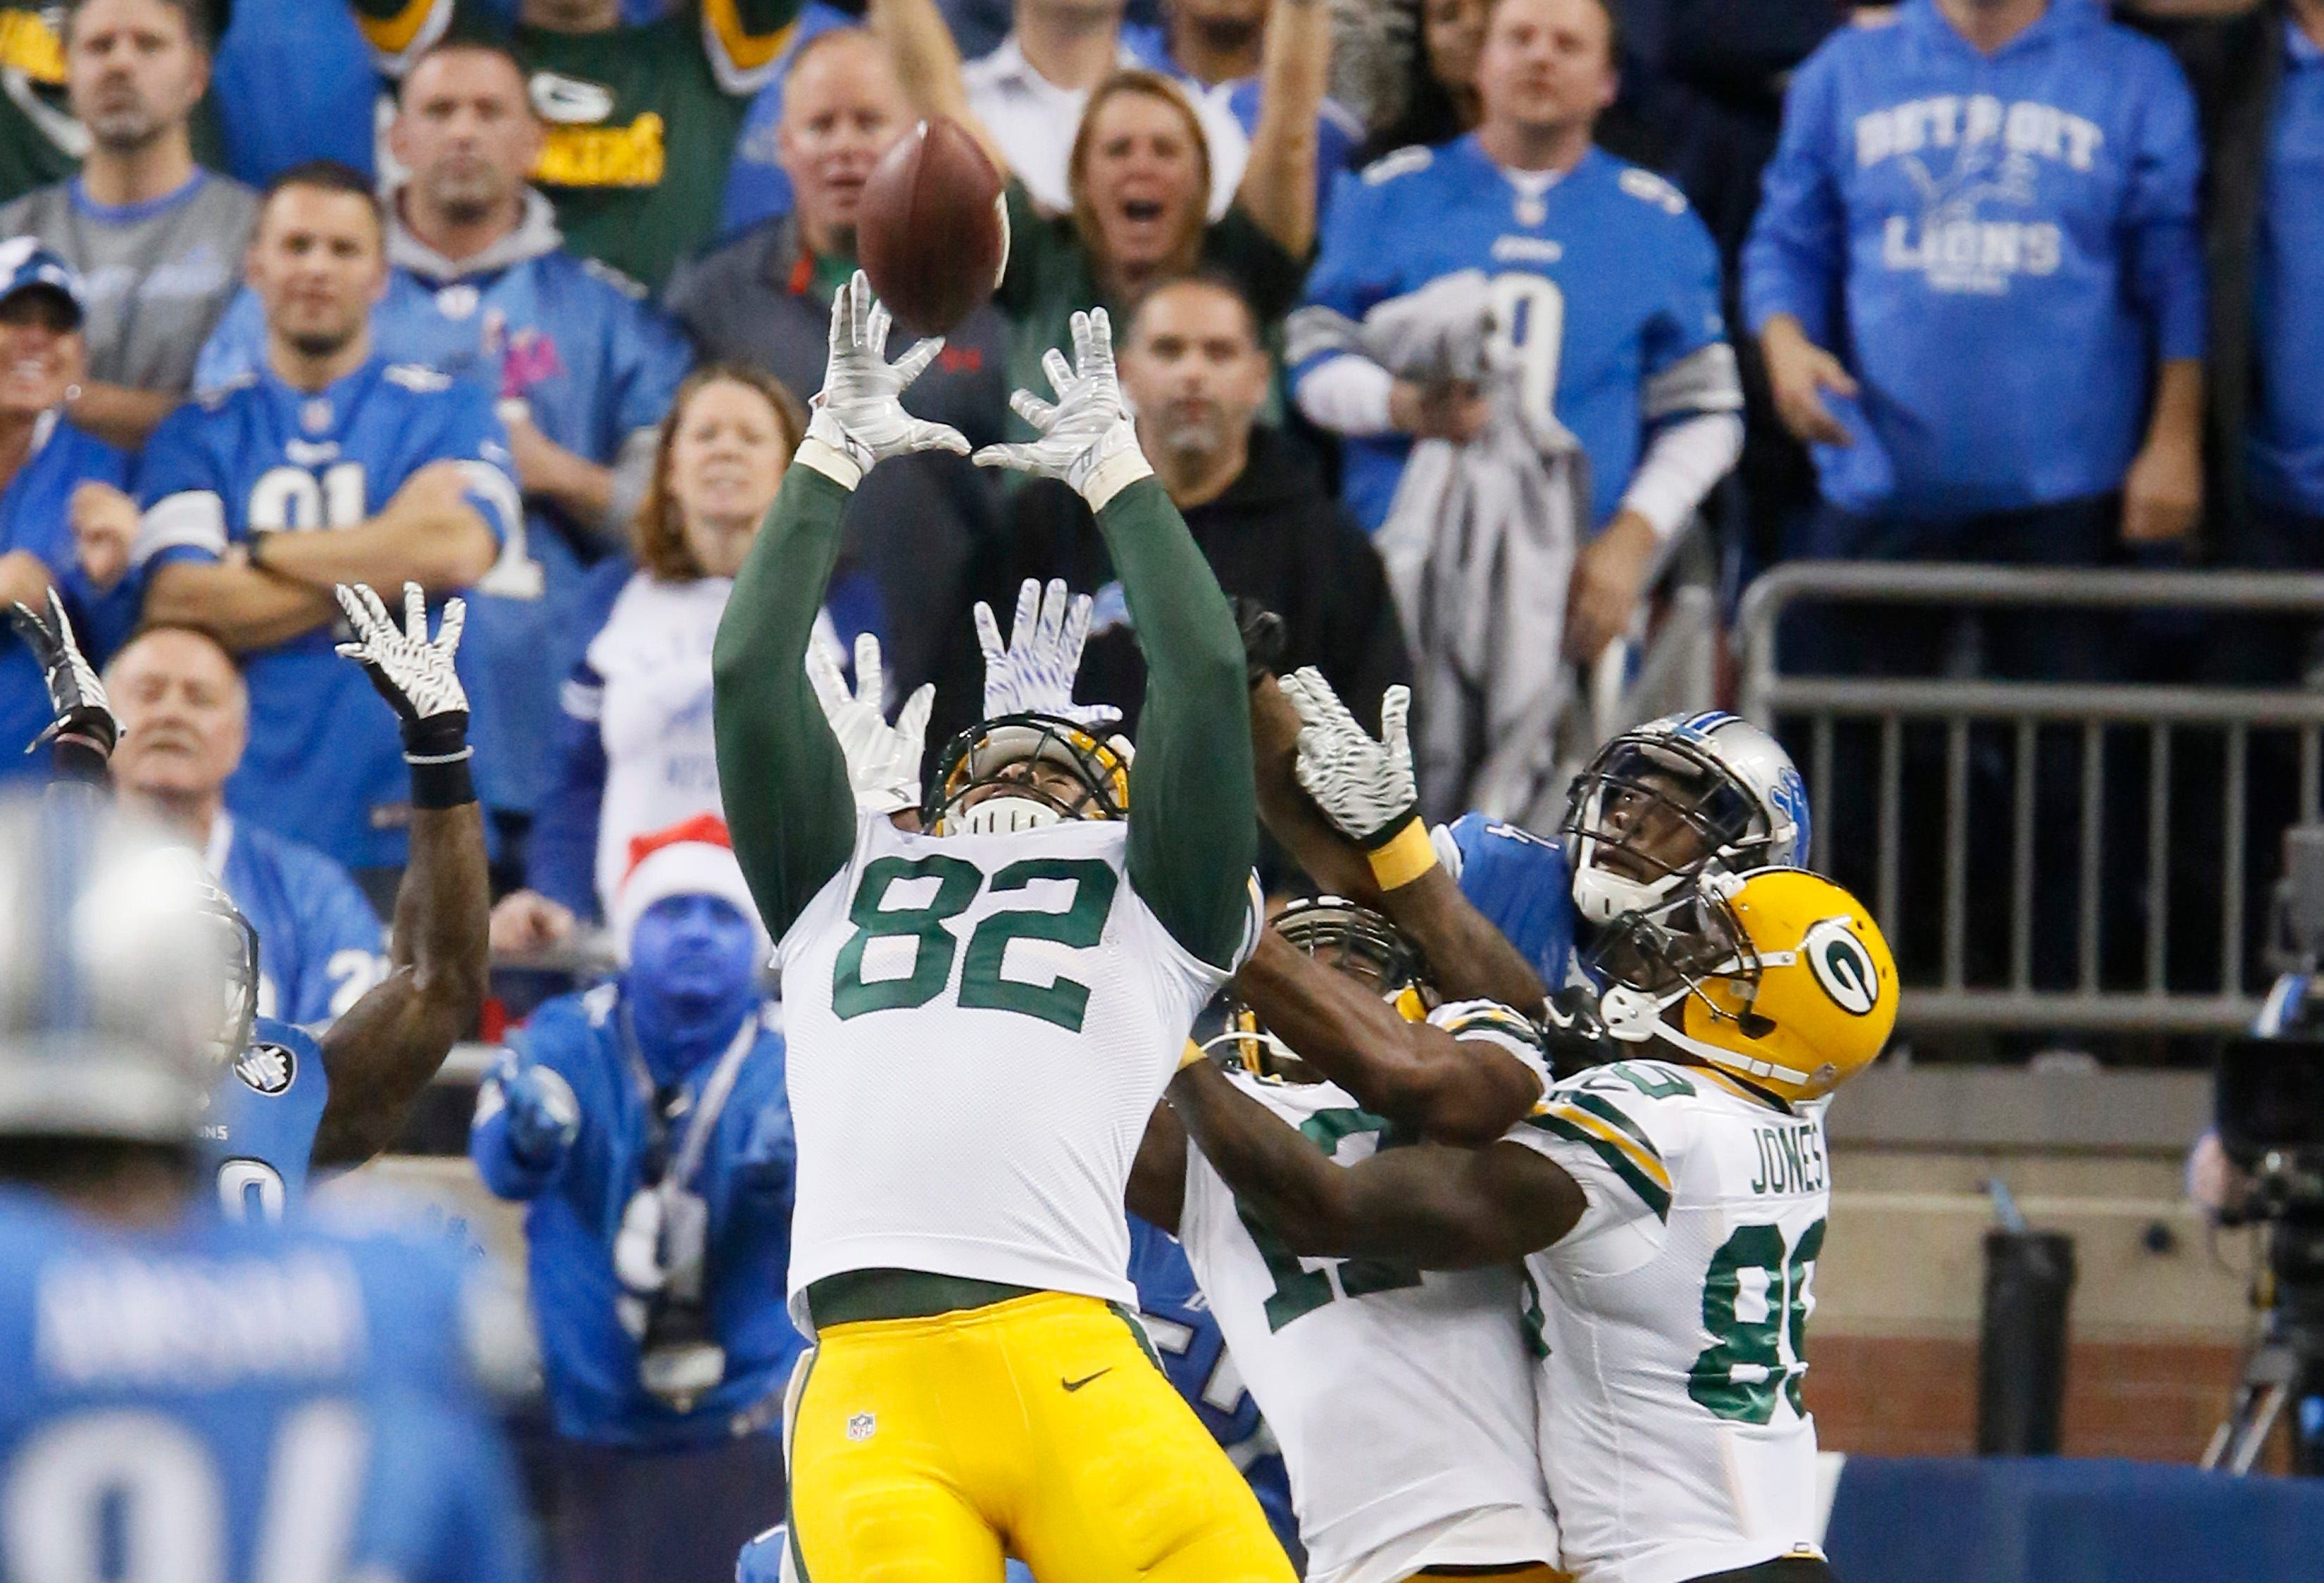 Officials Remember Aaron Rodgers Hail Mary Vs Detroit Lions As Just Another Play Nfl Season Aaron Rodgers Hail Mary Green Bay Packers Fans